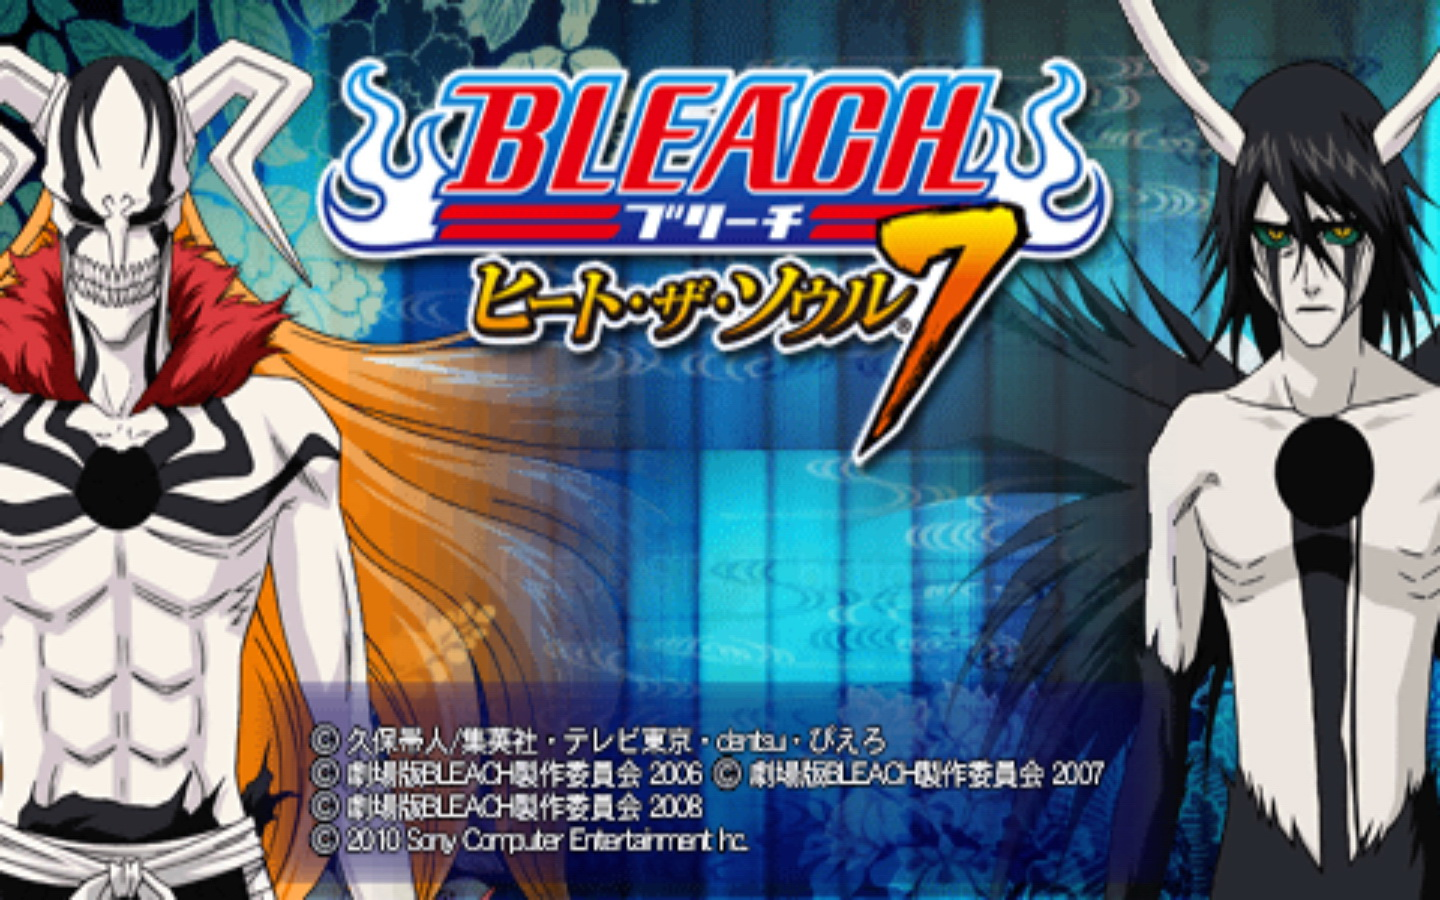 Download bleach heat the soul 7 psp iso.